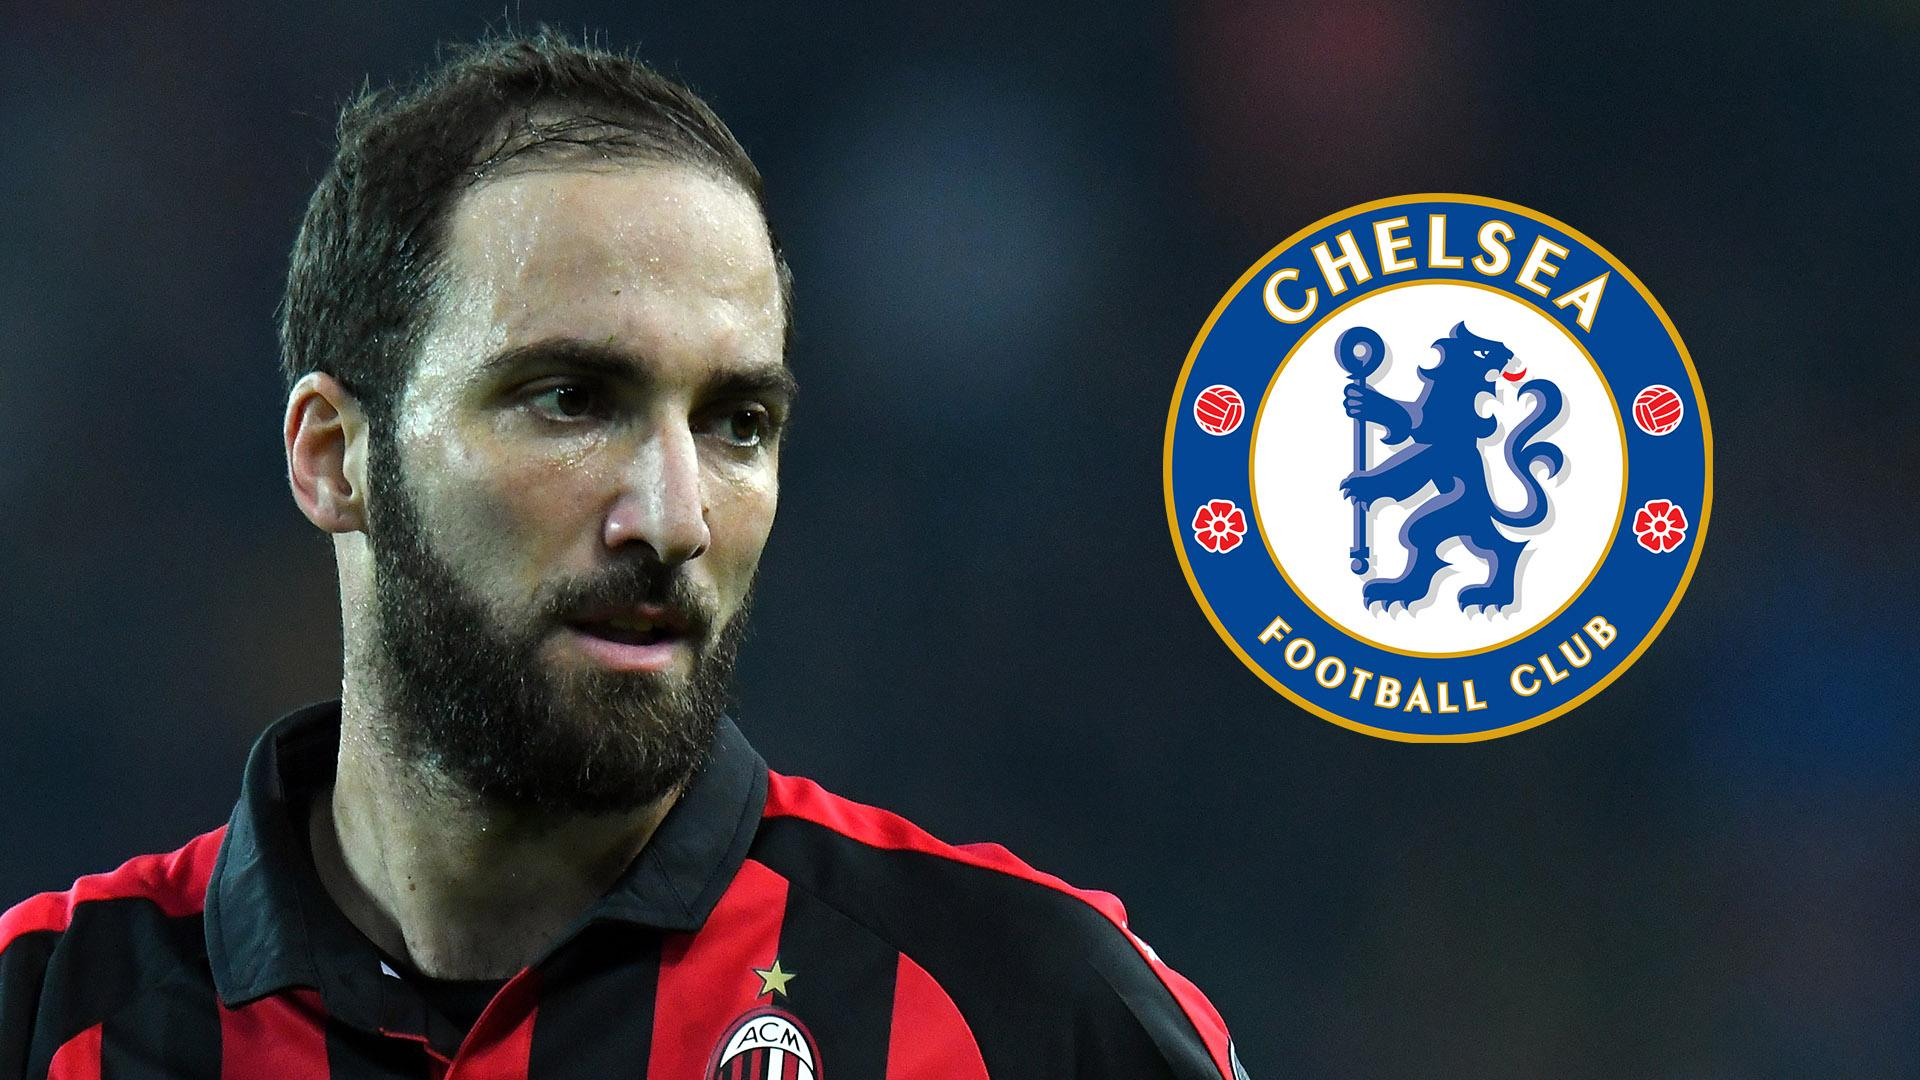 higuain to chelsea from ac milan